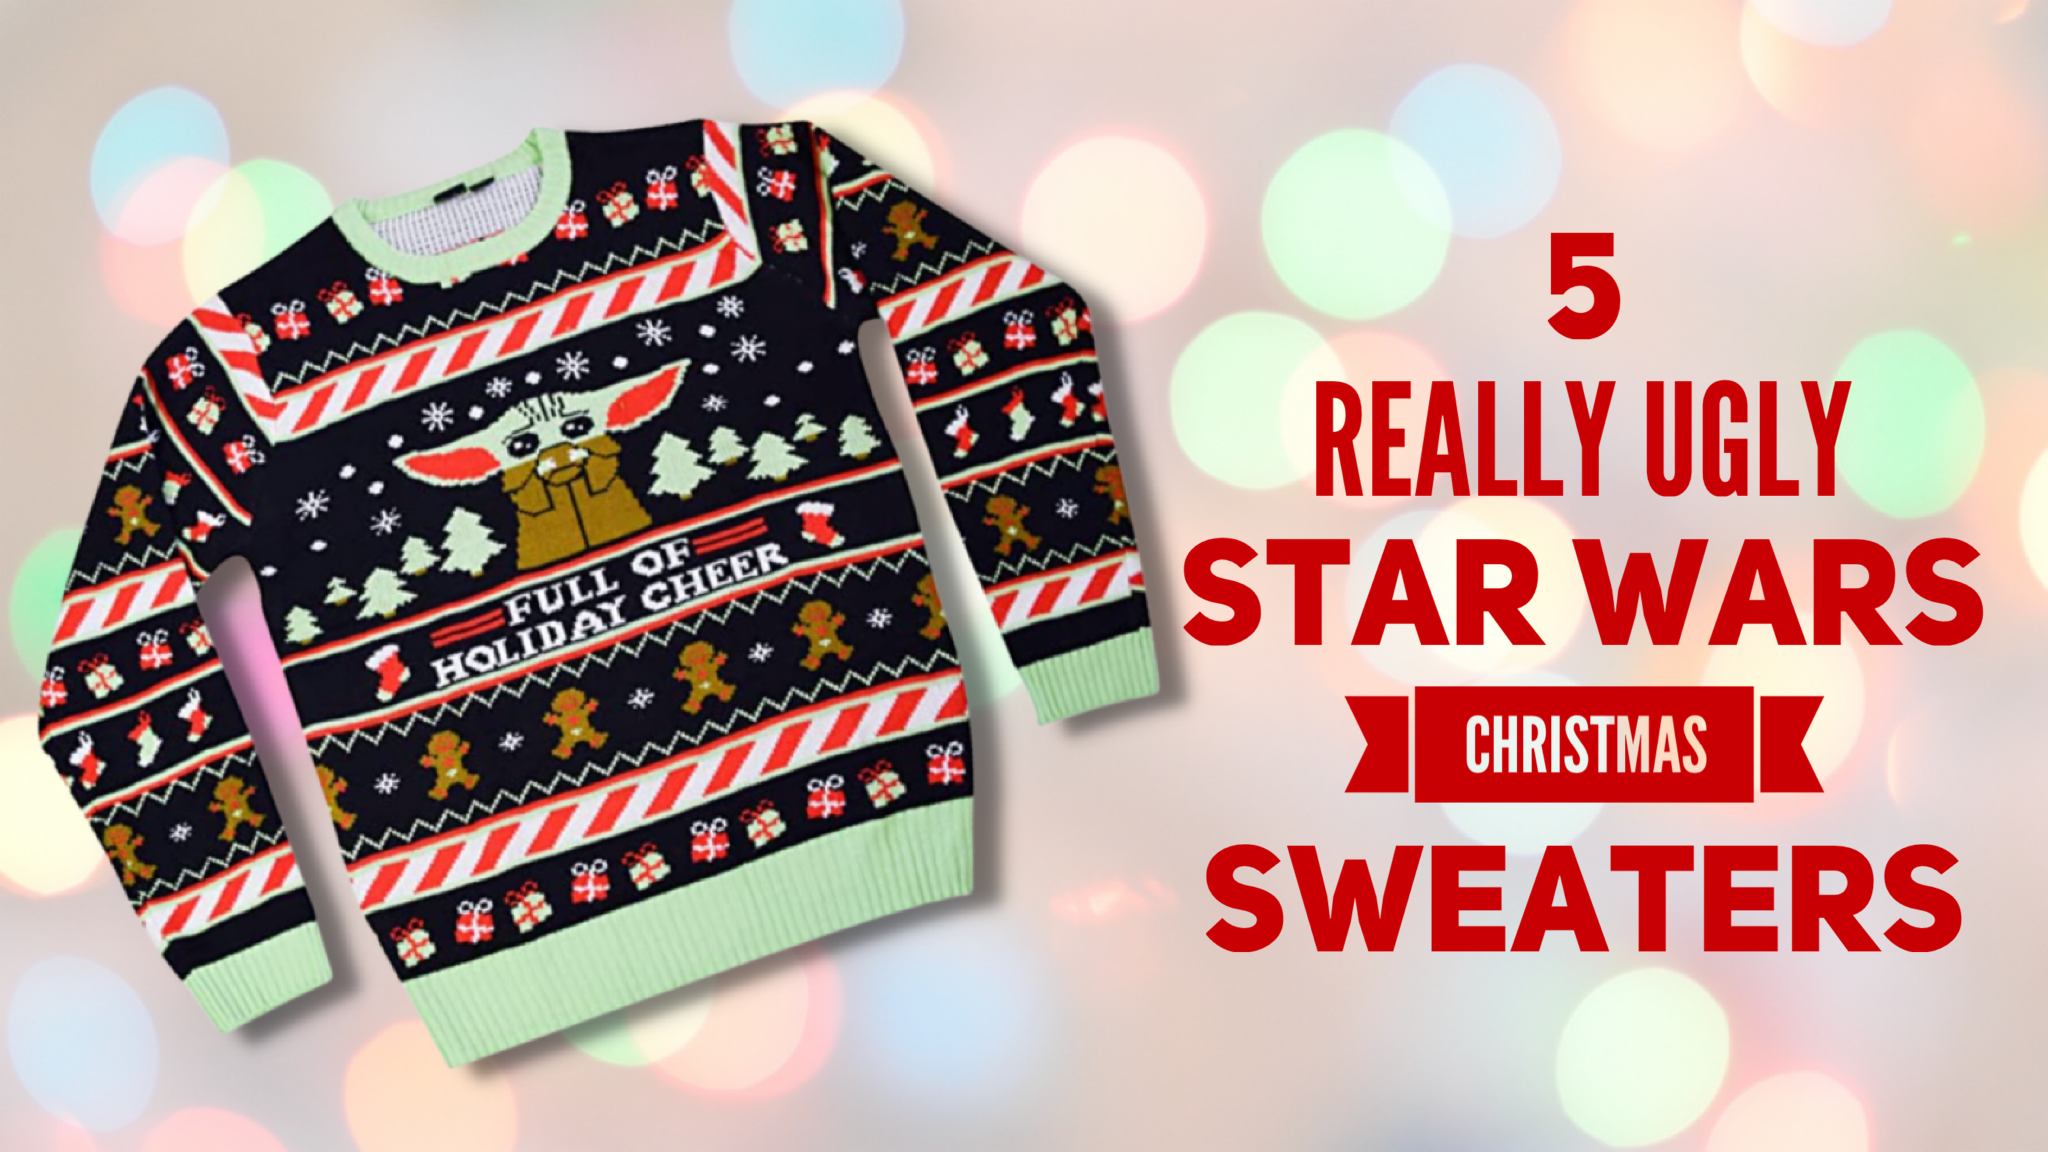 5 Really Ugly Star Wars Christmas Sweaters